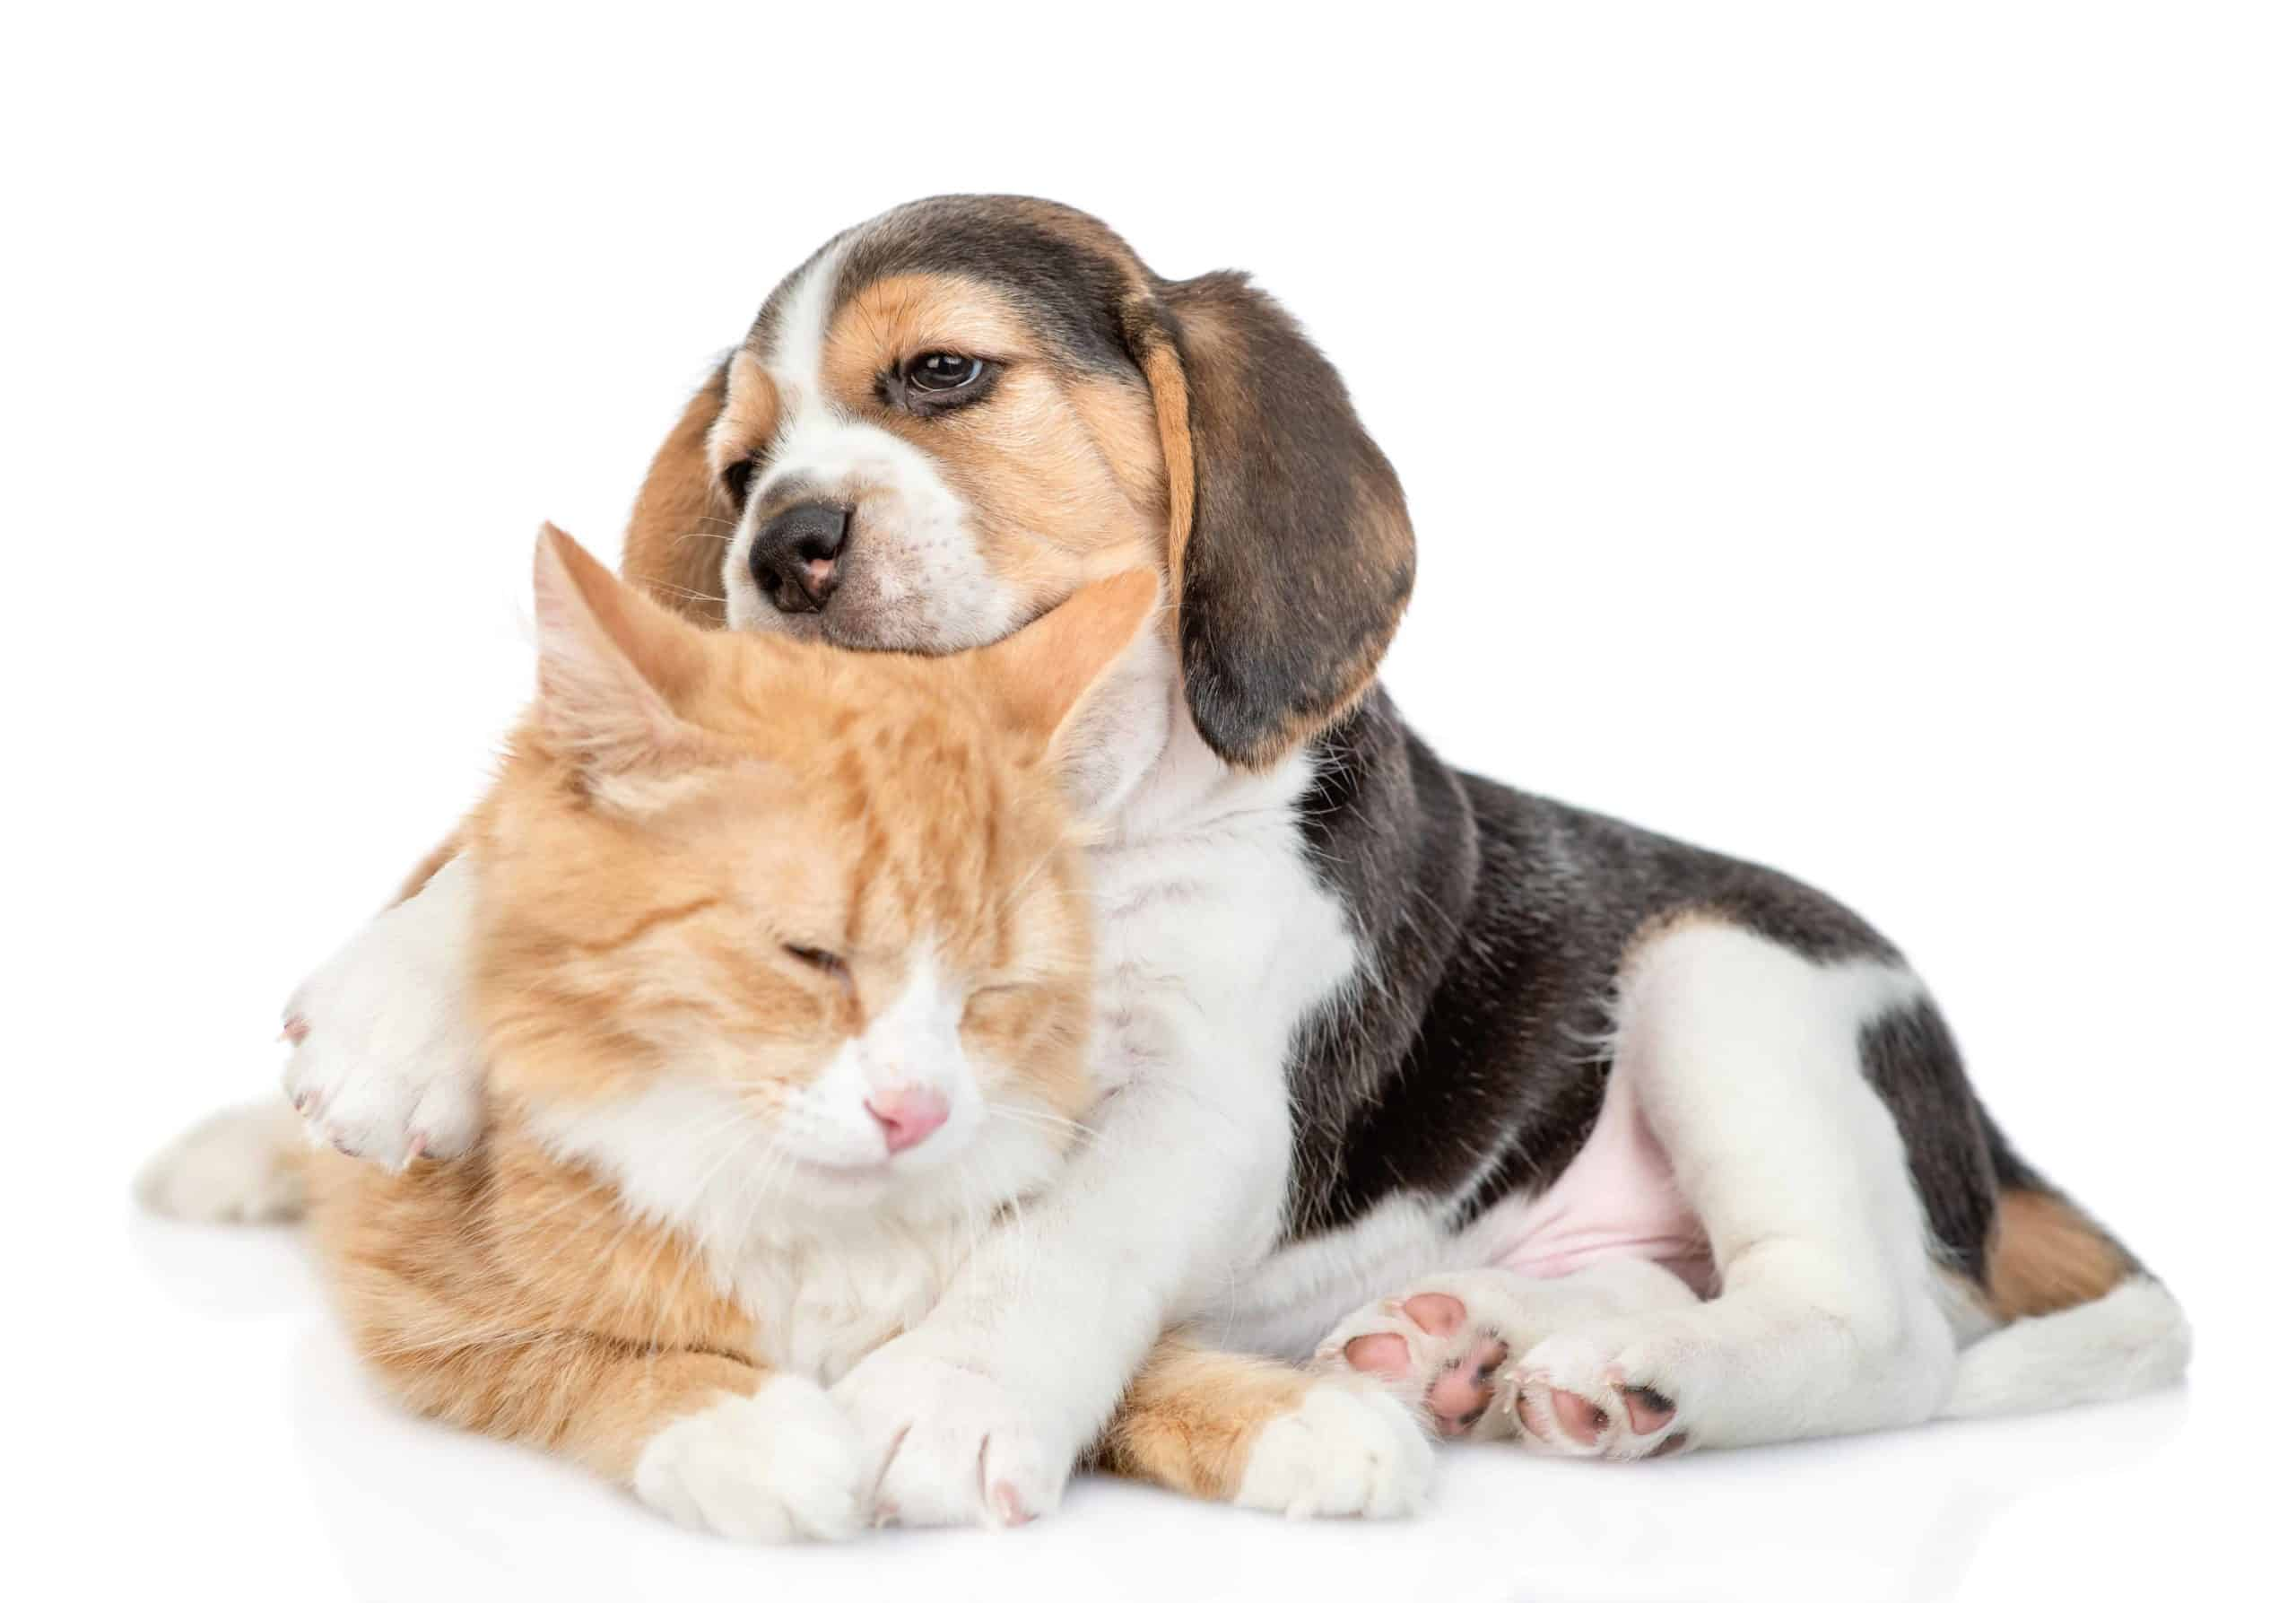 Beagle puppy cuddles with cat. Beagles are one of the top dog breeds compatible with cats. The dogs are generally friendly creatures and get along well with other animals.